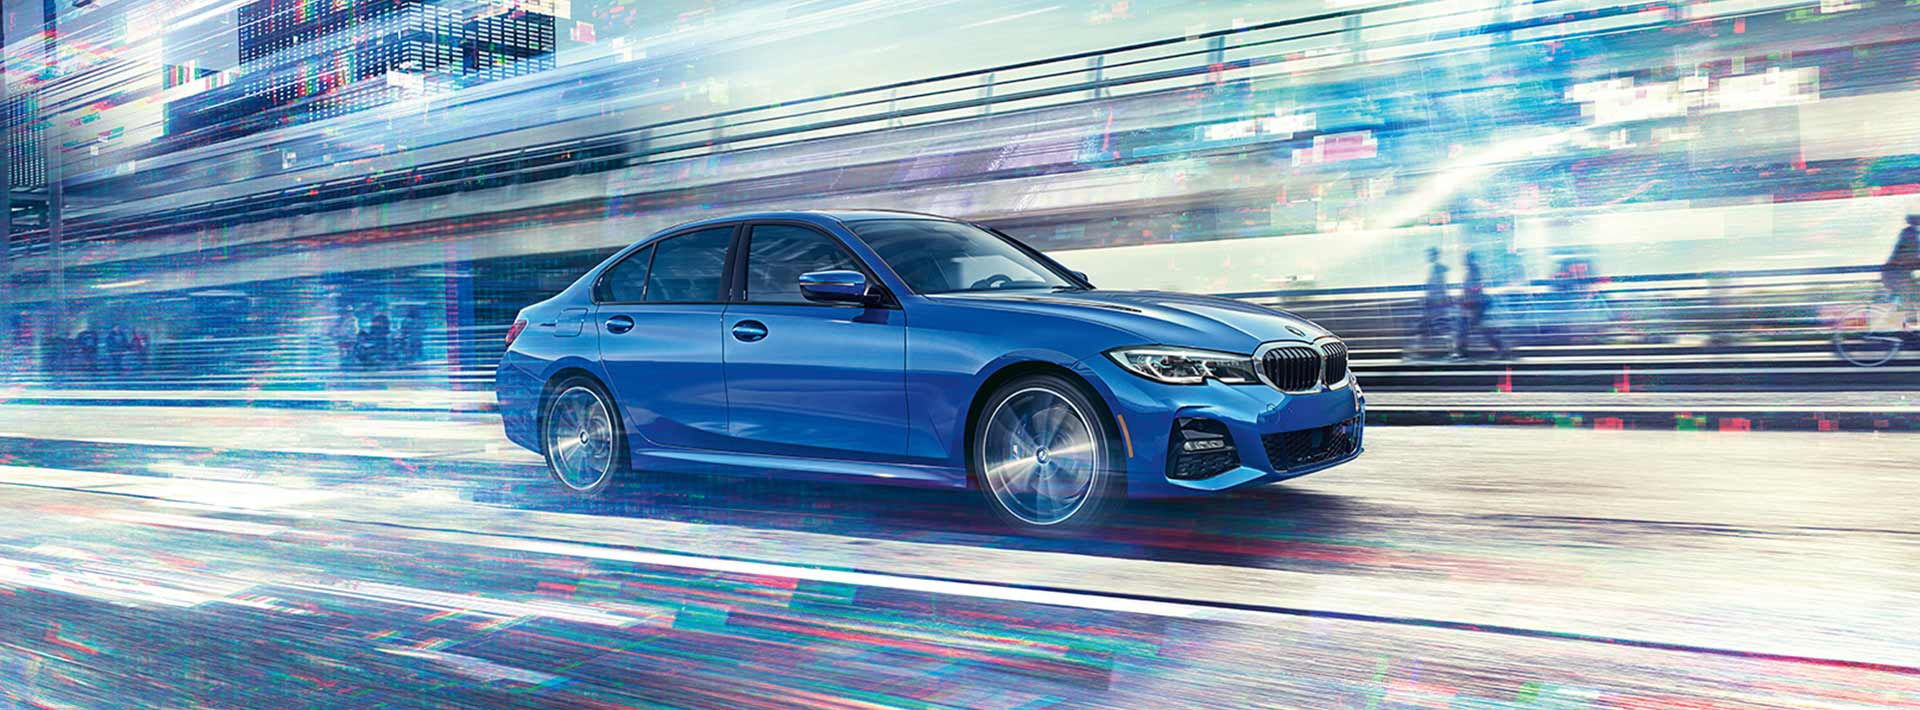 The 2019 BMW 3 Series is available at our BMW dealer near Savannah, GA